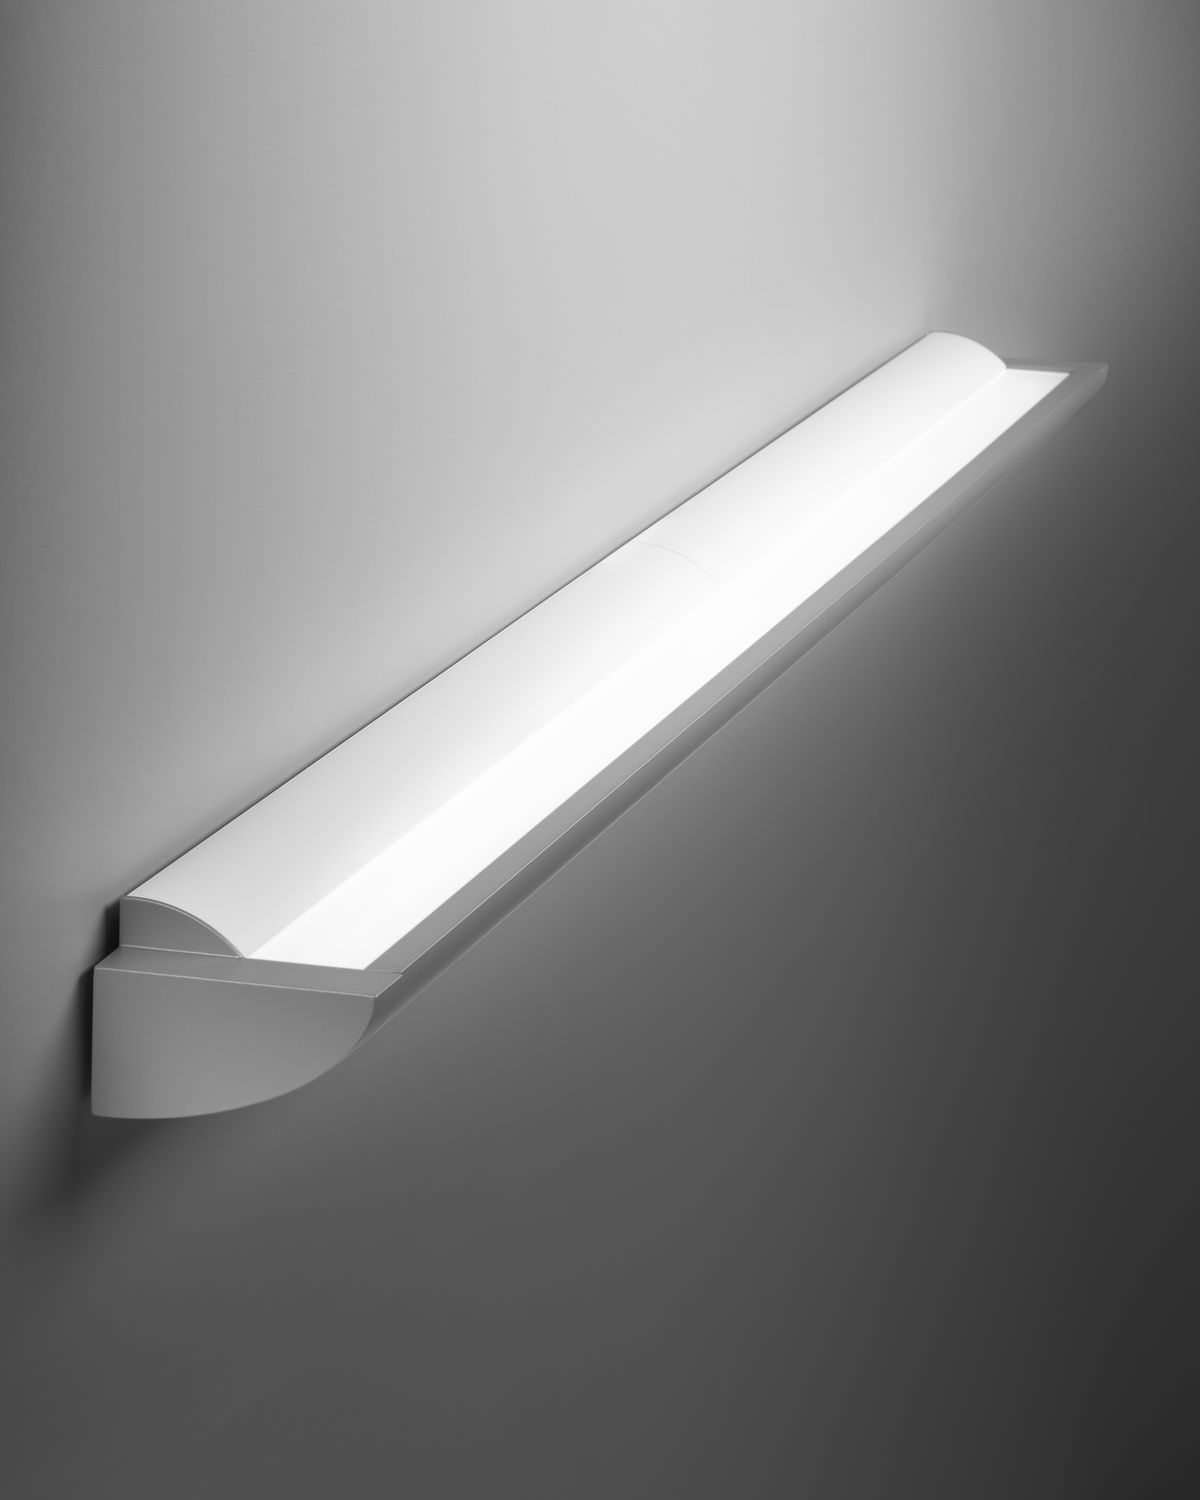 Timeless Wall Mounted Fluorescent Light Fixtures Warisan Lighting